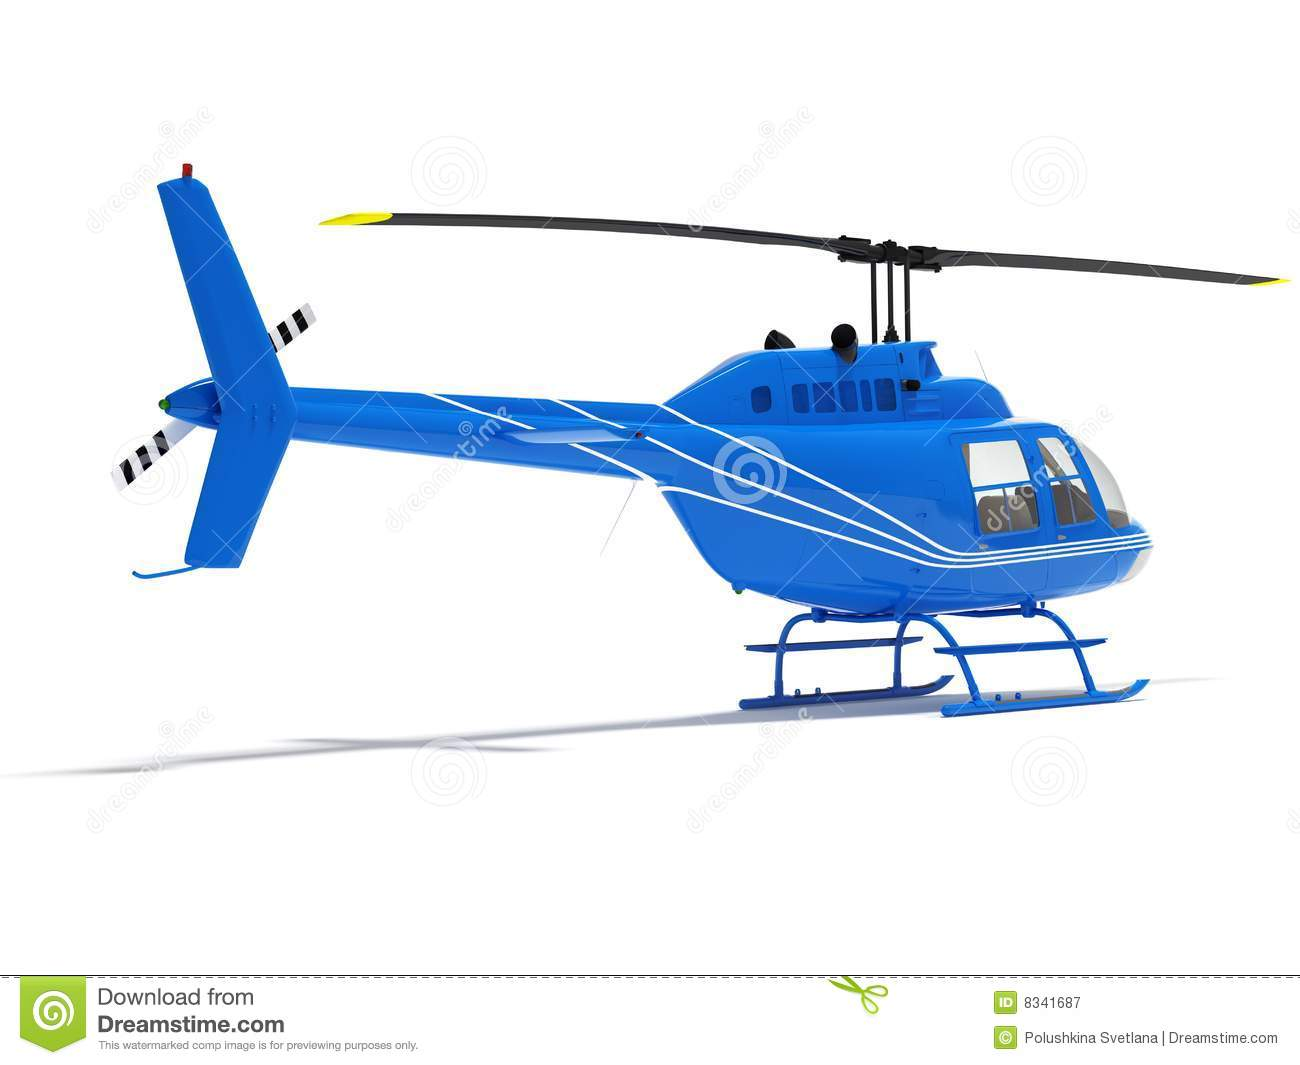 bell helicopter prices with Royalty Free Stock Photography Helicopter Isolated White Background Image8341687 on Stock Image Aircraft Instruments Set Six Avionics Eps Vector Illustration Image33549111 in addition Royalty Free Stock Images Drawing Helicopter Image8427989 moreover Coffin additionally R44 Raven additionally Editorial Stock Image Vintage Huey Helicopter Monroe Nc November Uh H Performing Warbirds Over Monroe Air Show Monroe Nc Image46780579.